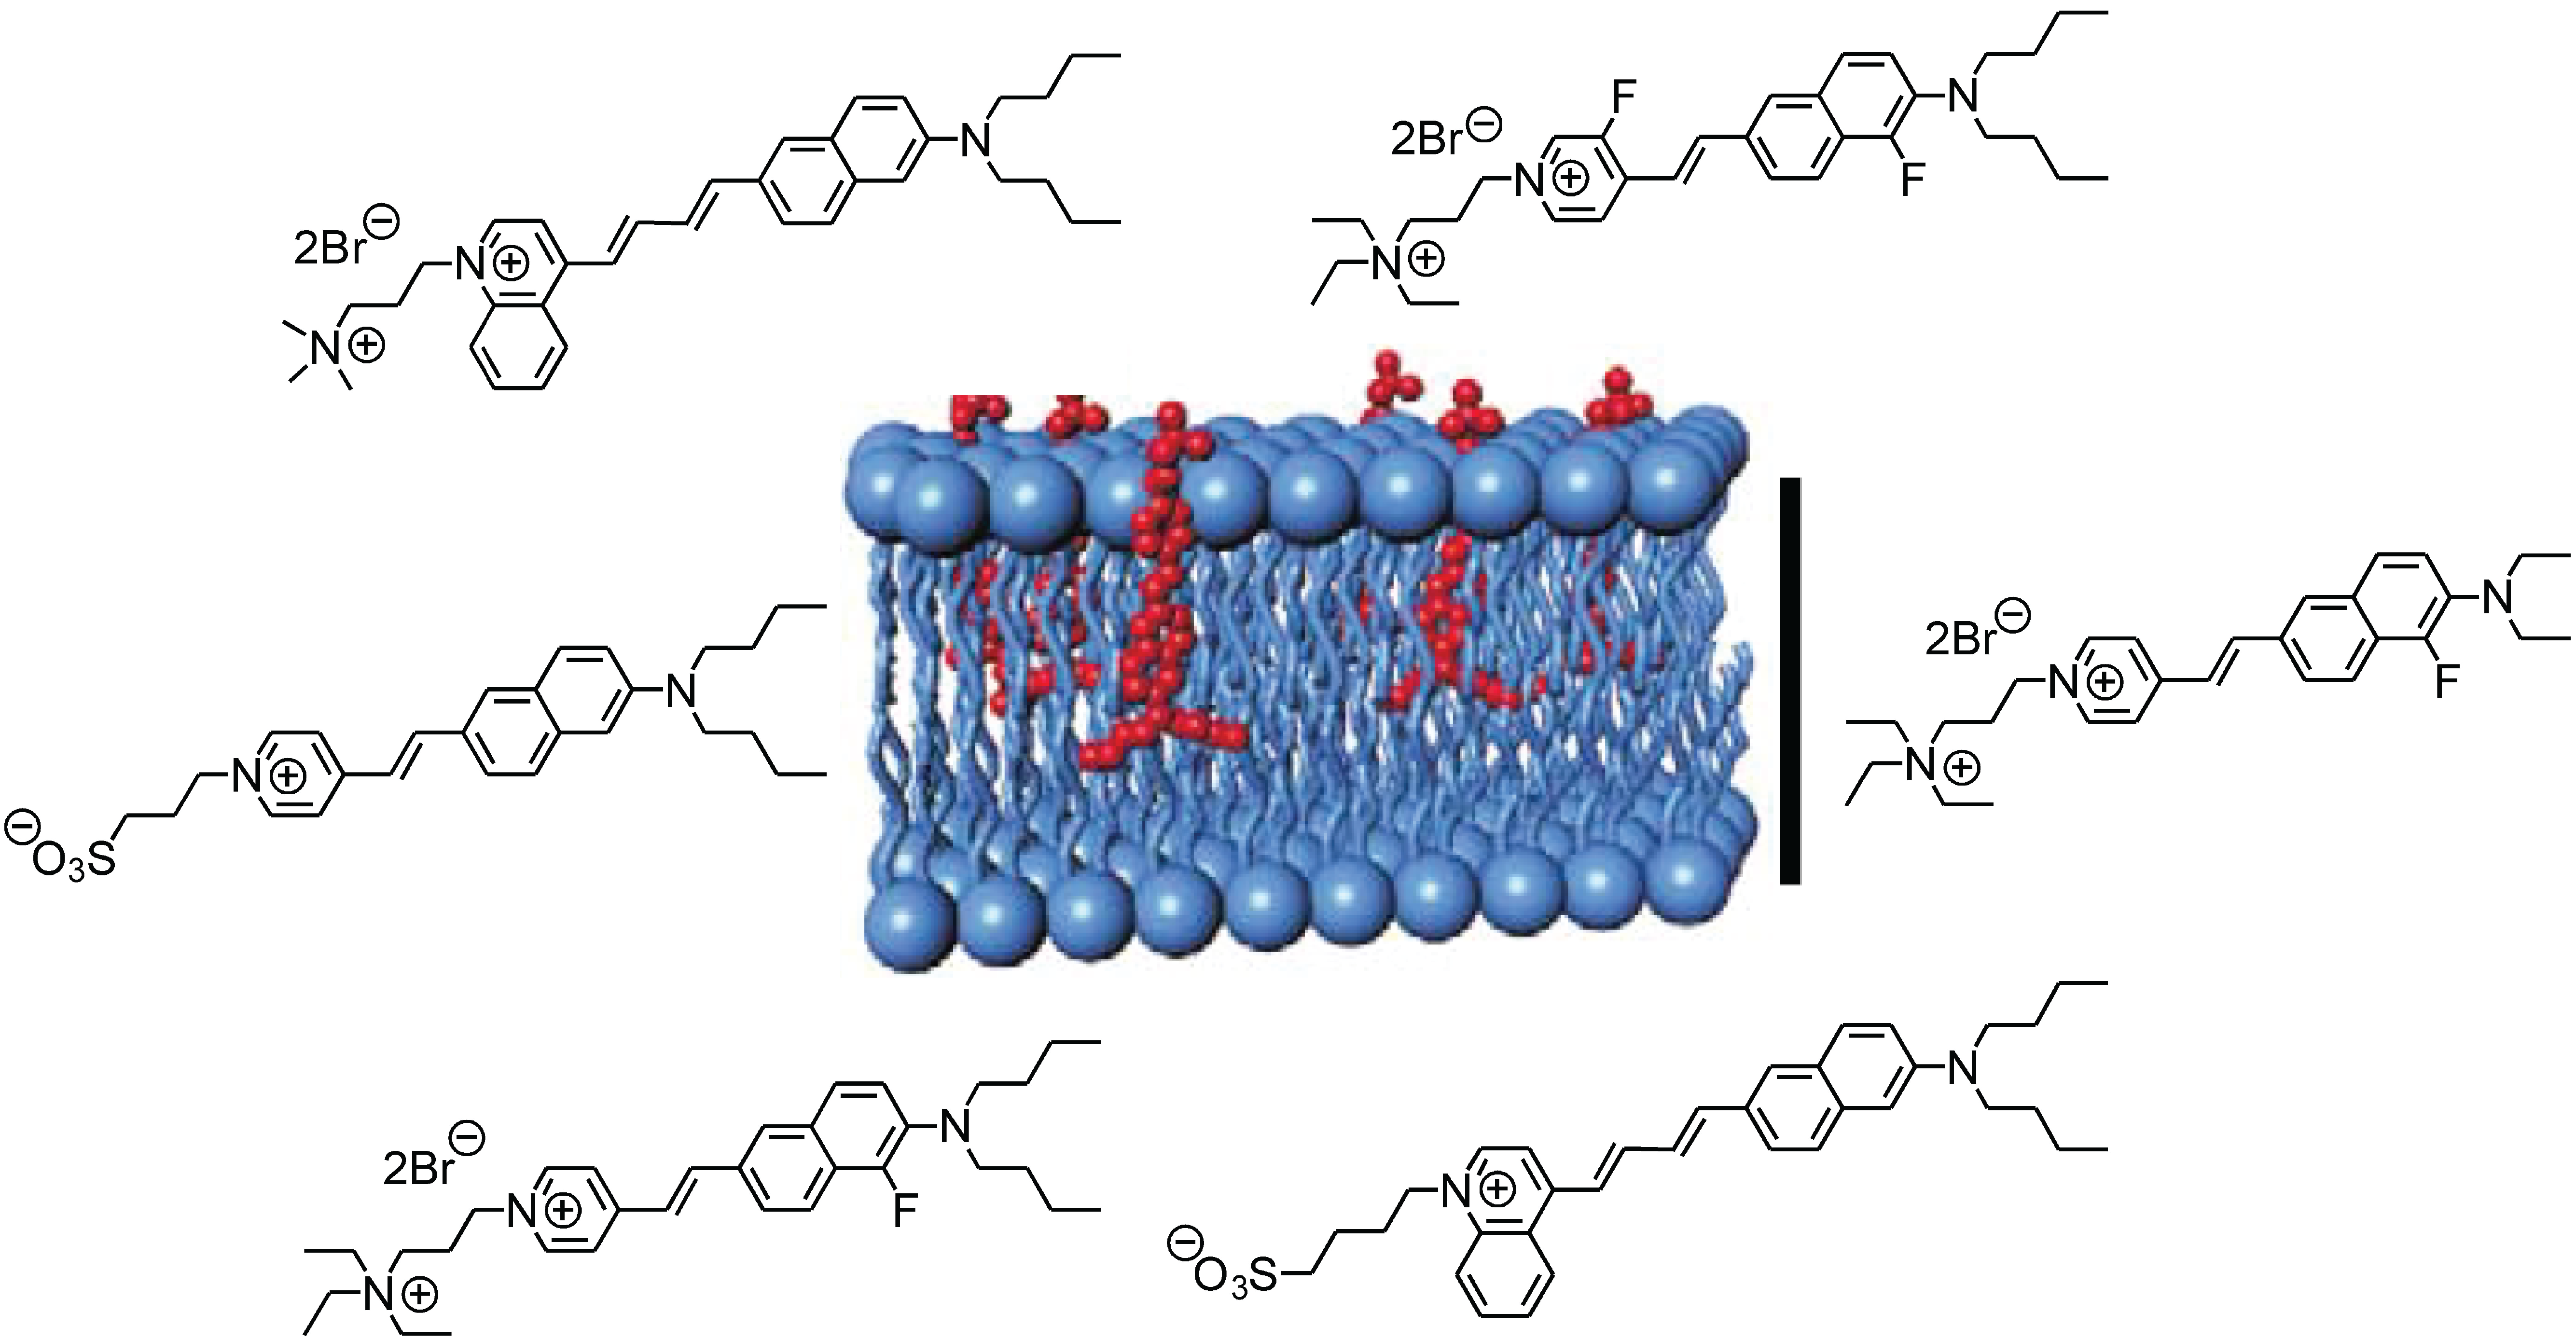 Membrane binding of voltage-sensitive dyes from Potentiometric Probes including Di-4-ANEPPS